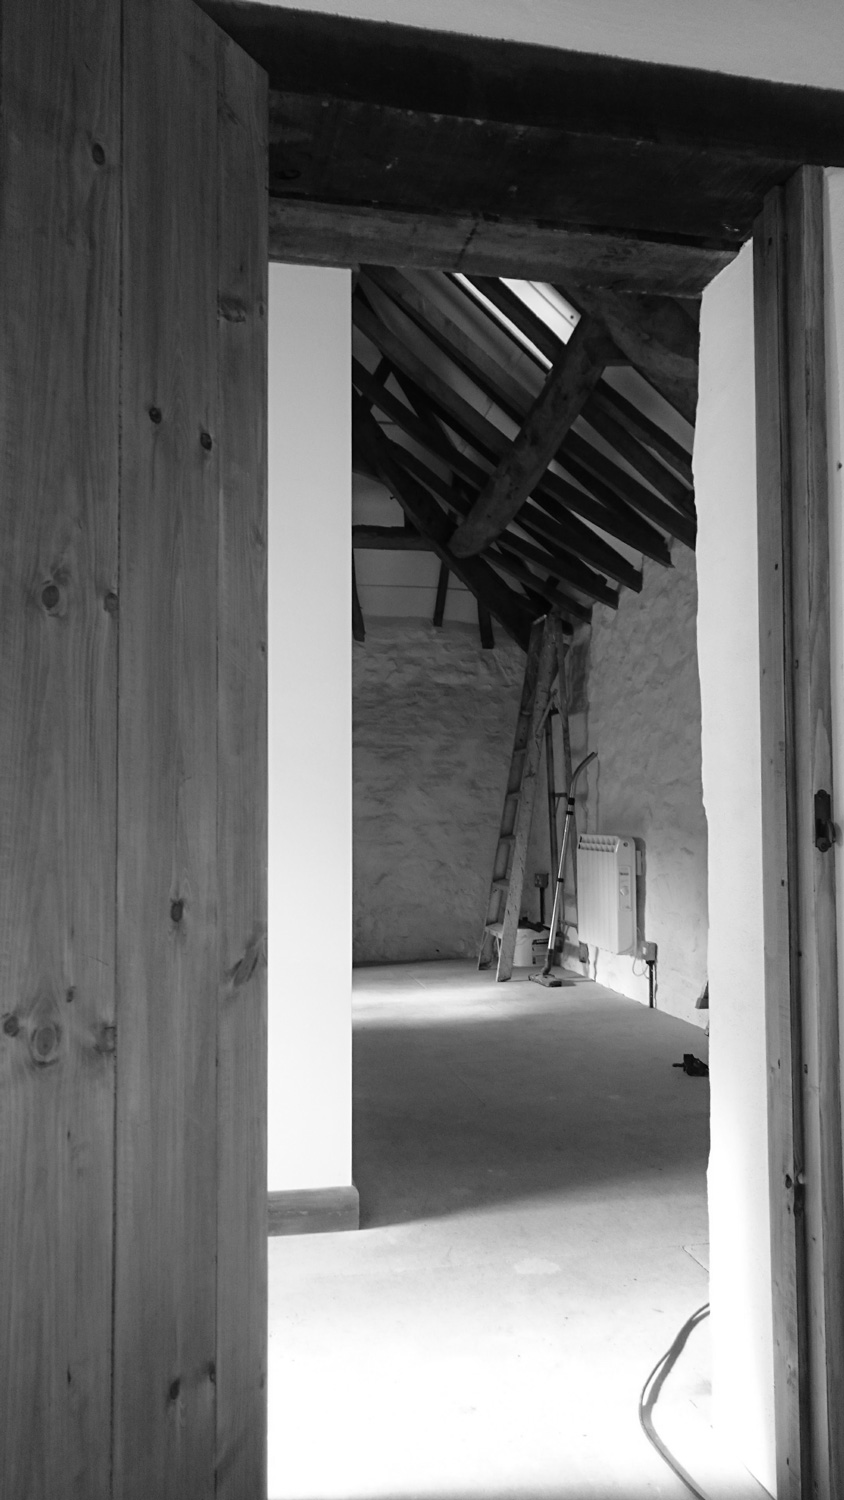 barn-conversion-new-dwelling-somerset-exmoor-conservation-planning-listed.jpg